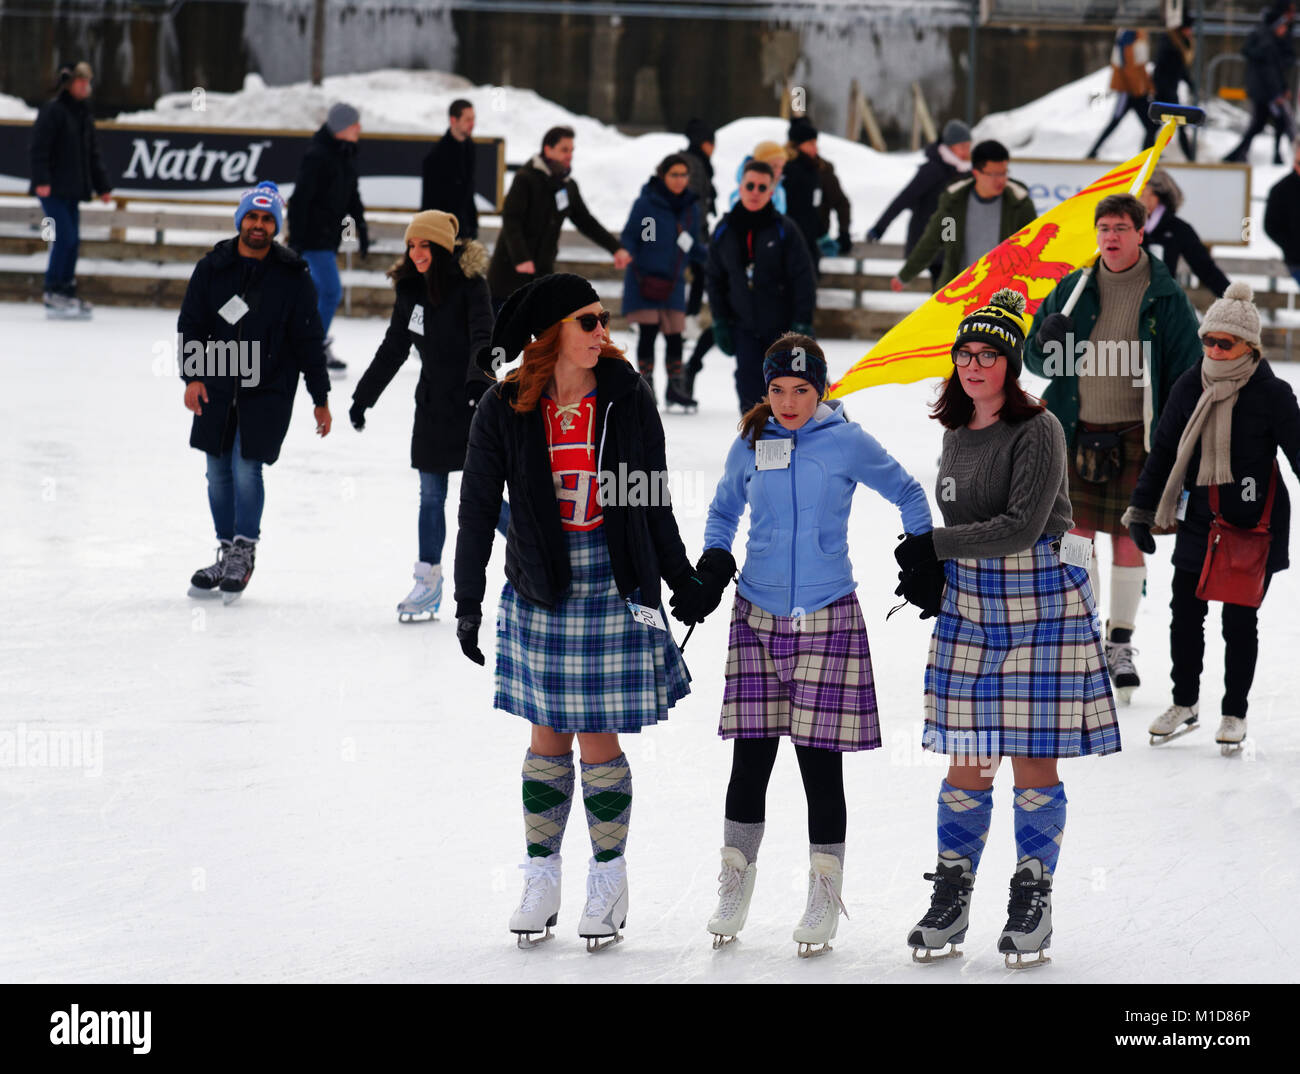 Skaters in Montreal Old Port celebrating their Scottish ancestry in the annual Great Canadian Kilt Skate - Stock Image